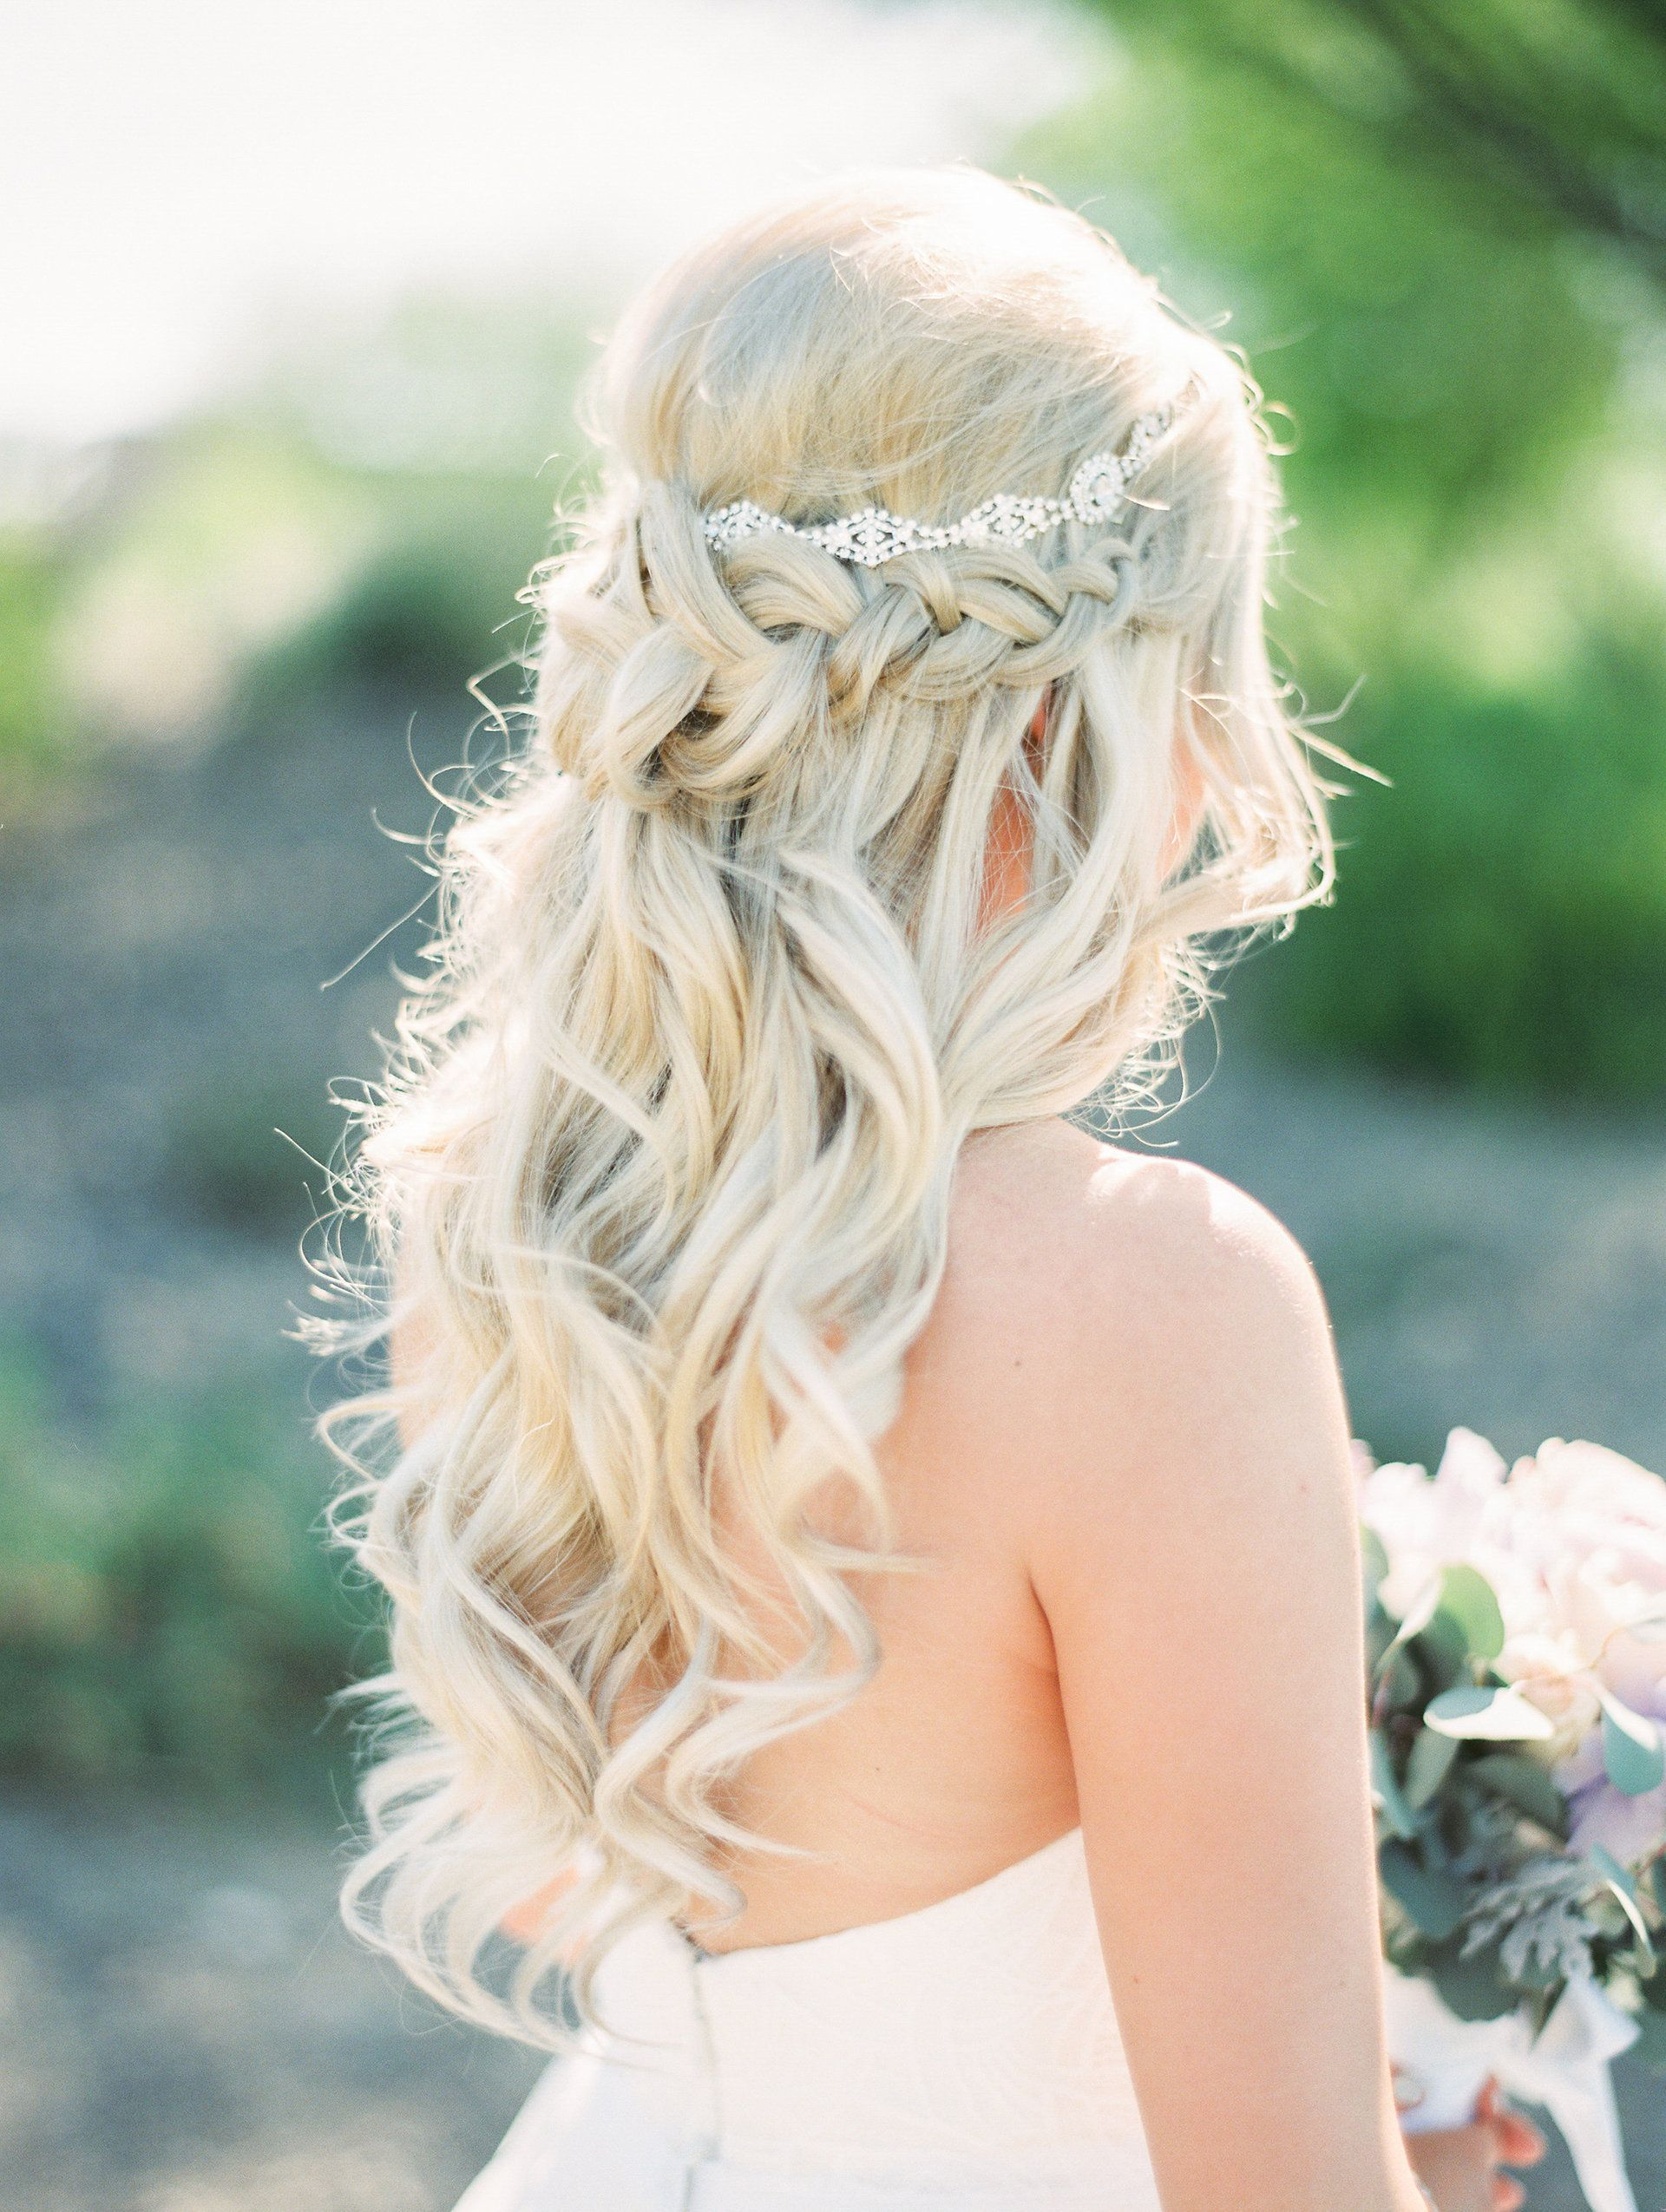 Perfect Long Blonde Curls Bridal Hair Fit For A Princess Diamond